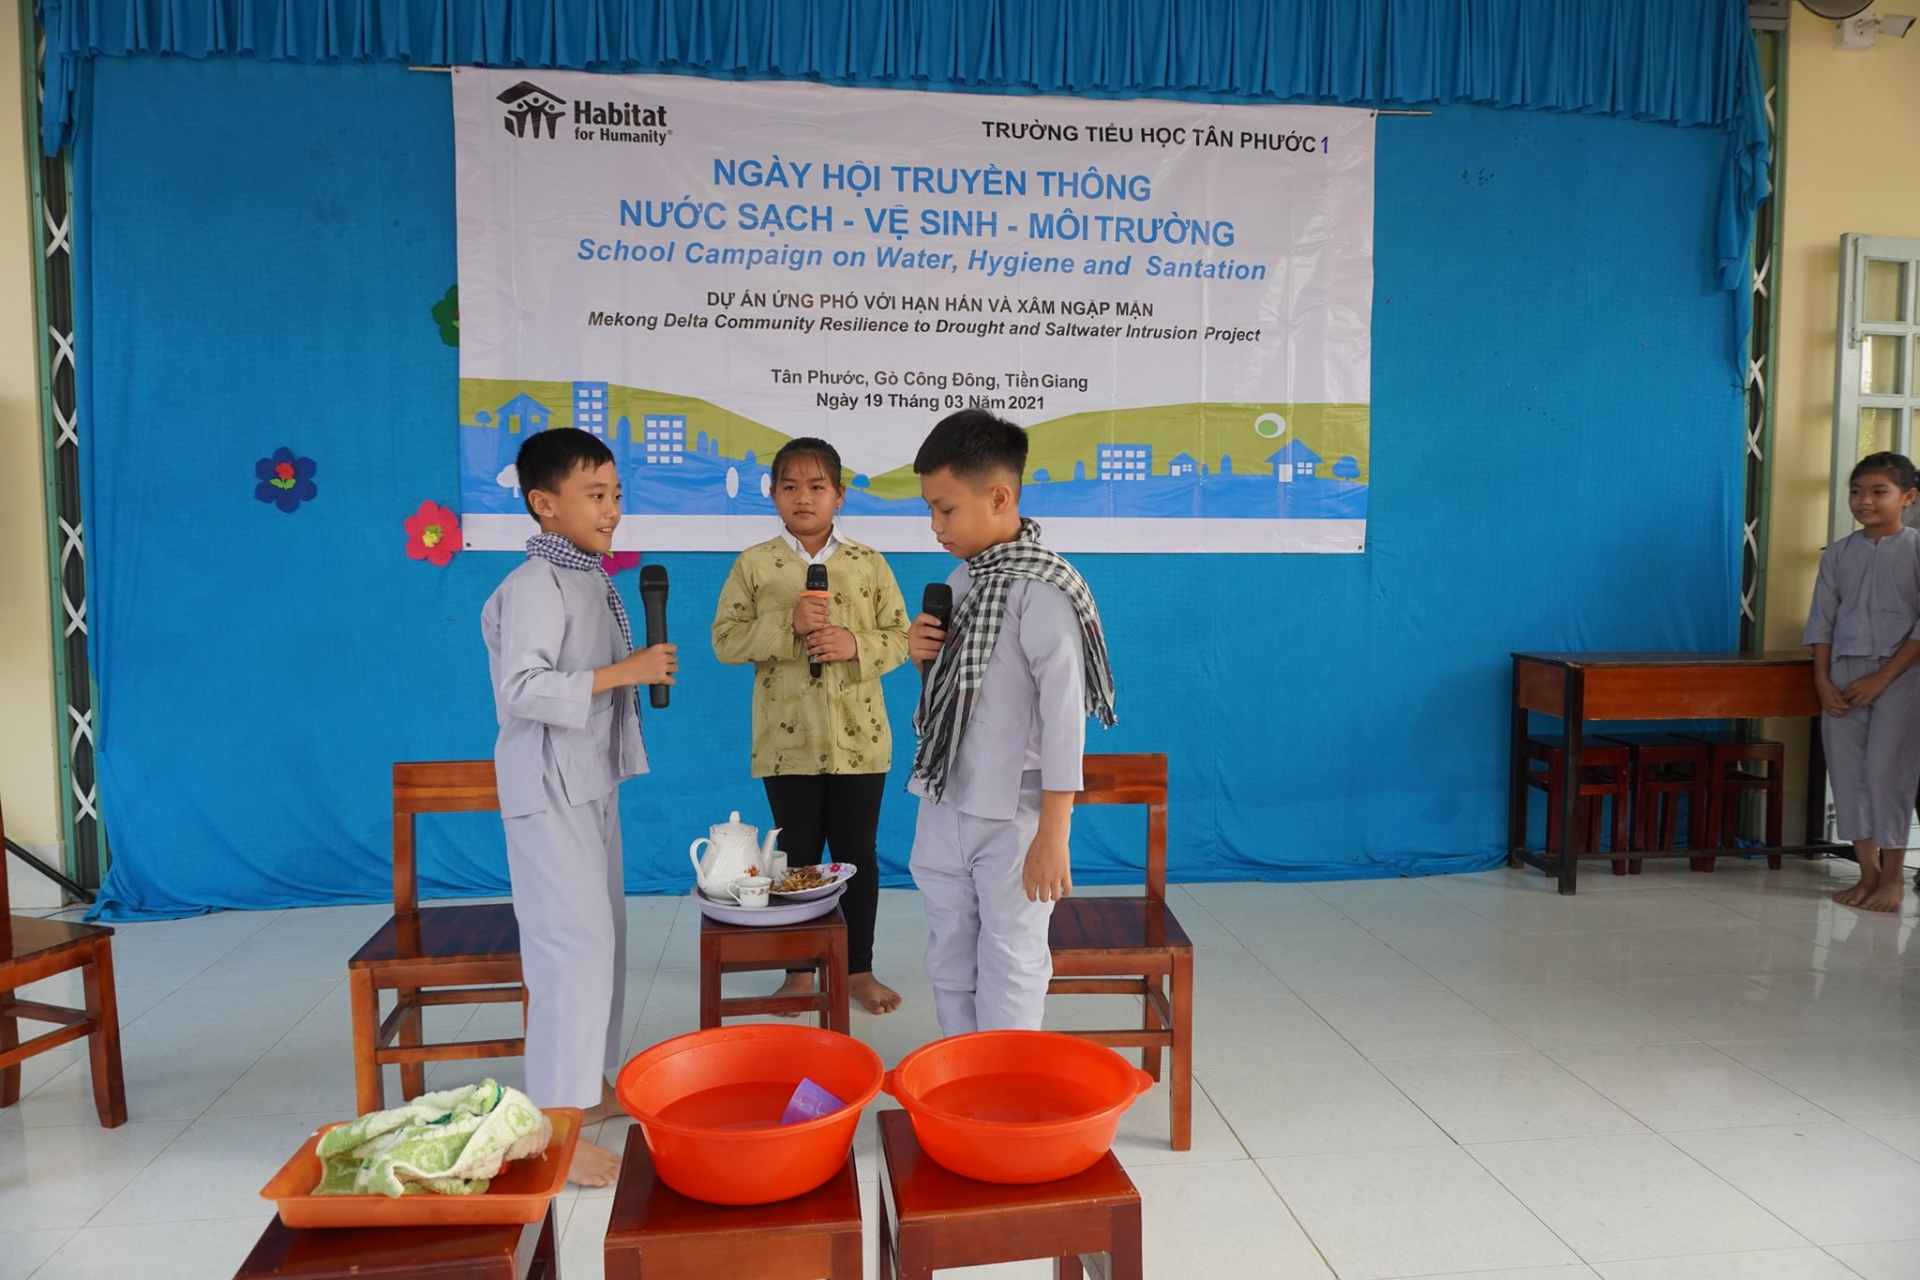 Habitat Vietnam assists Mekong Delta in building resilience to drought and saltwater intrusion